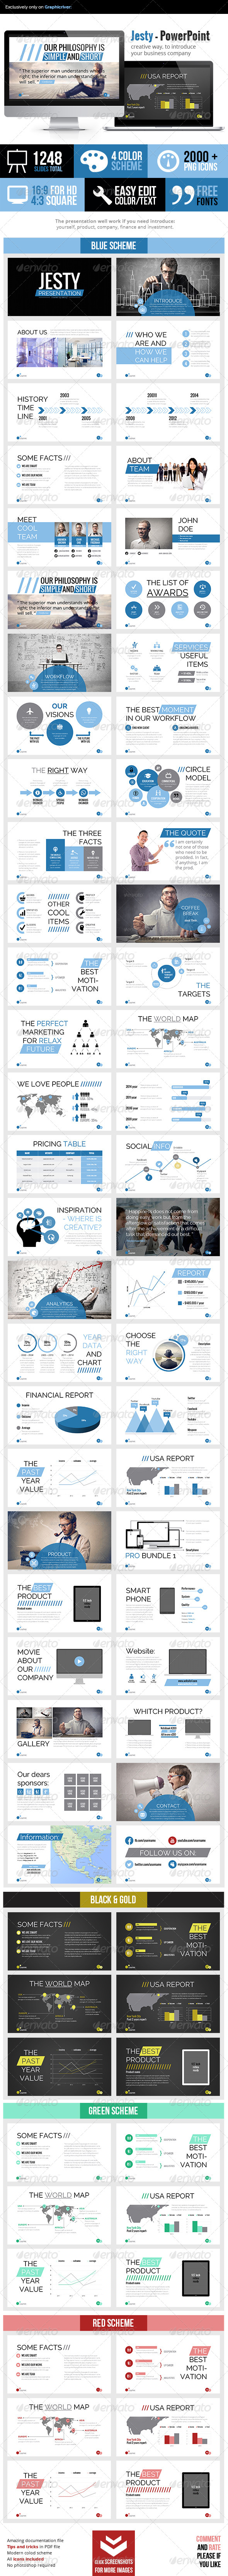 GraphicRiver Jesty Powerpoint Presentation 7474862